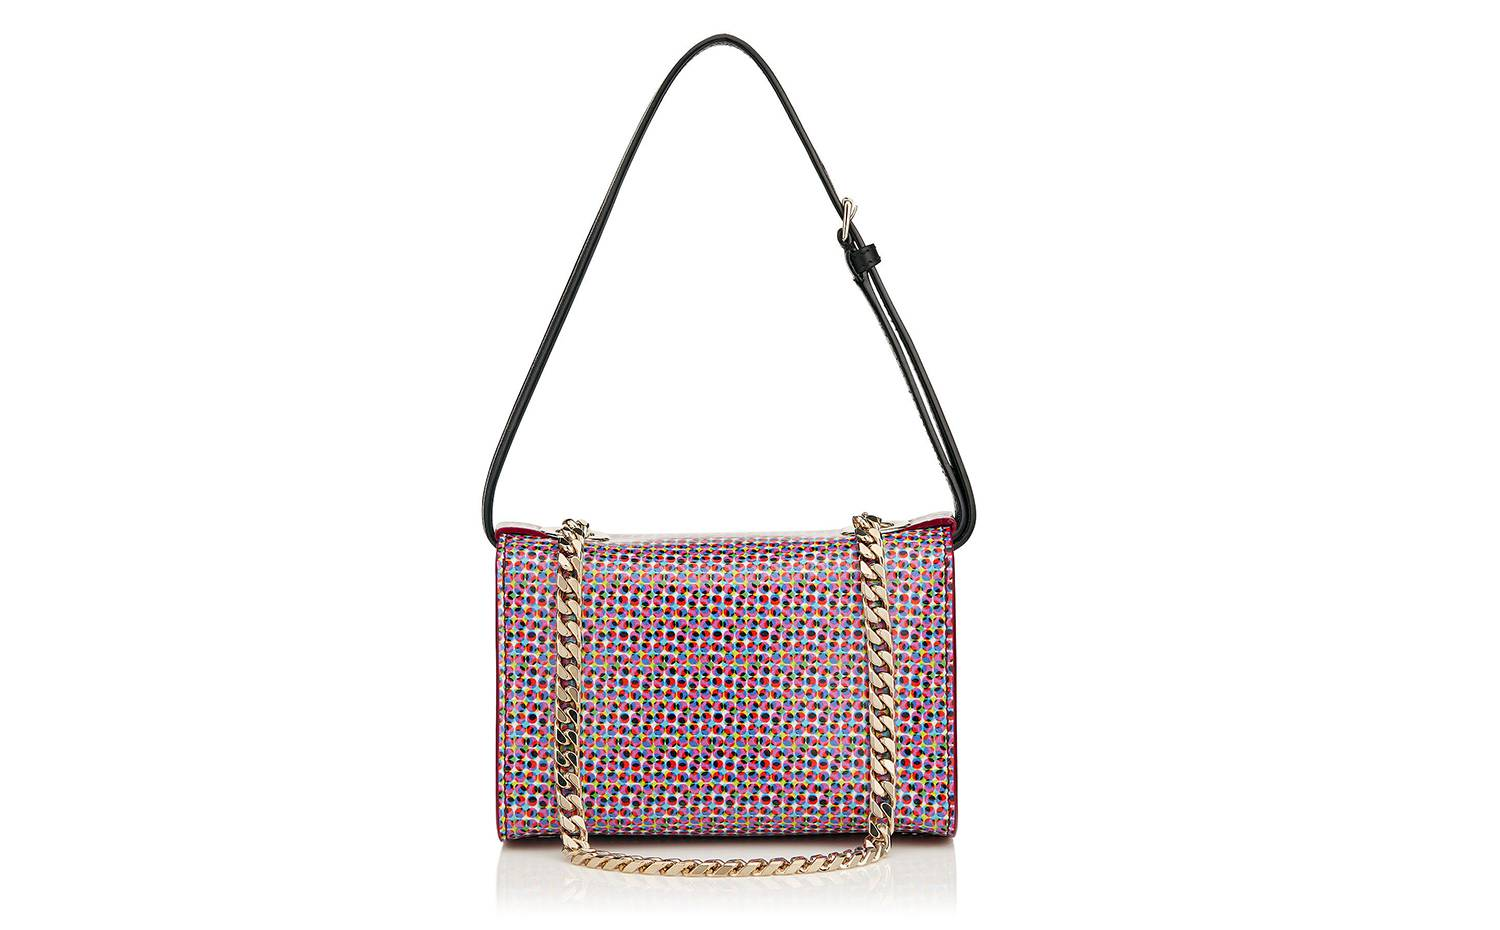 Jimmy Choo - Digital Print Patent Leather Handbag